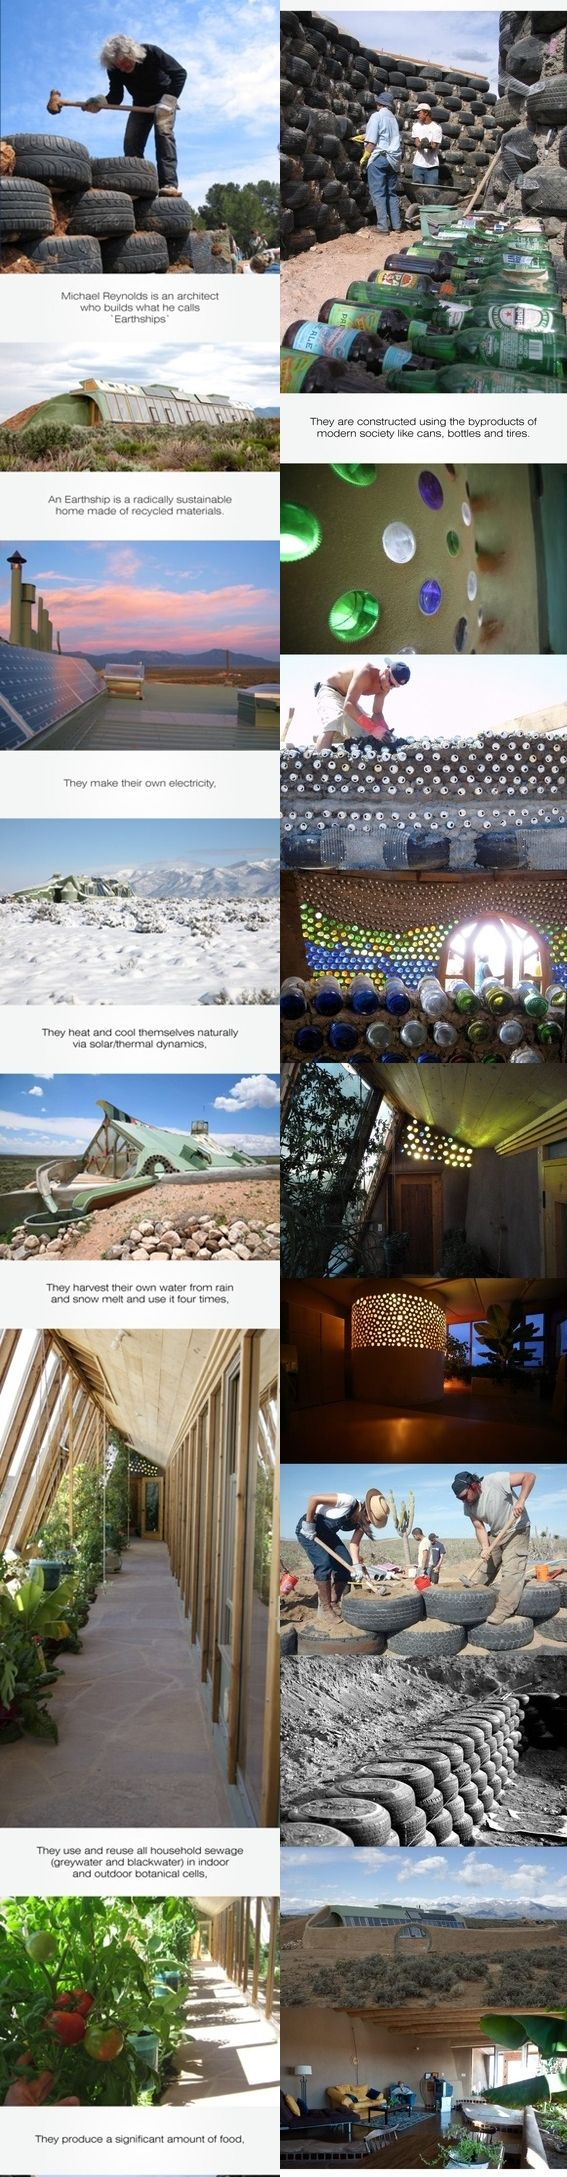 EARTHSHIPS - I would love to make one of these radically sustainable homes.